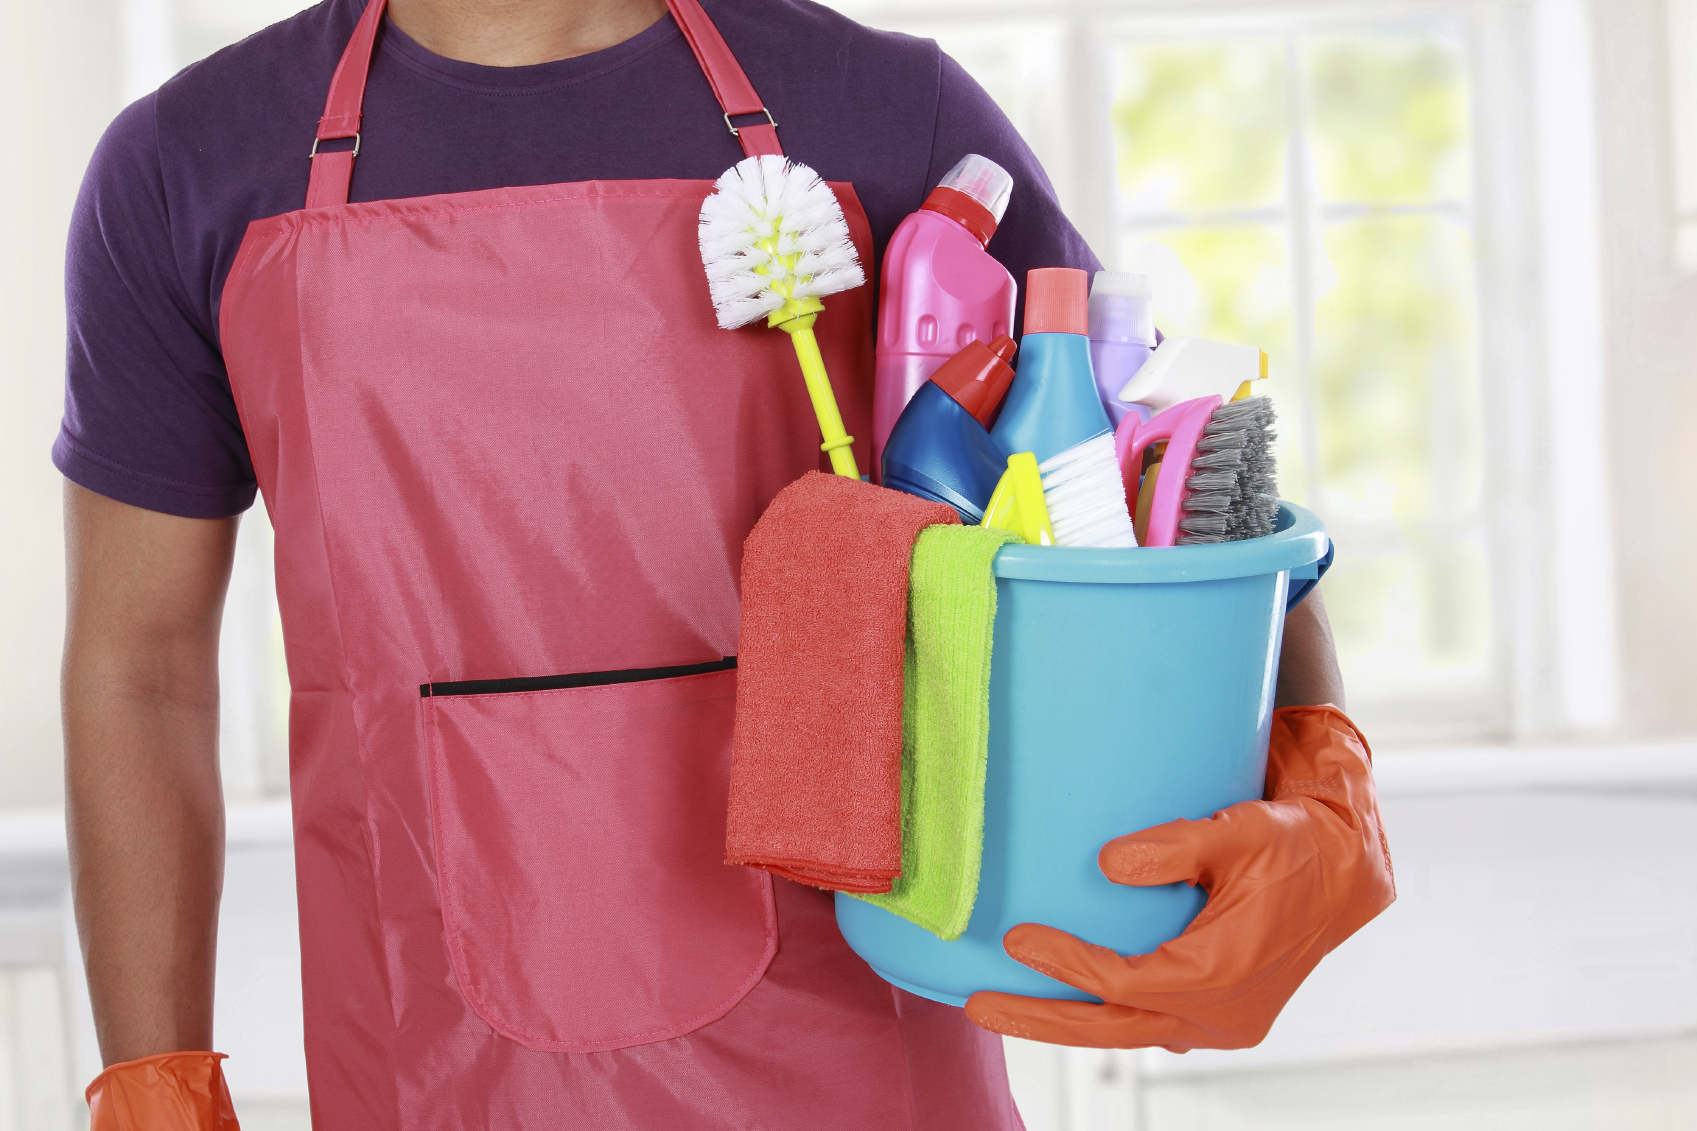 Portrait of hand with cleaning equipment